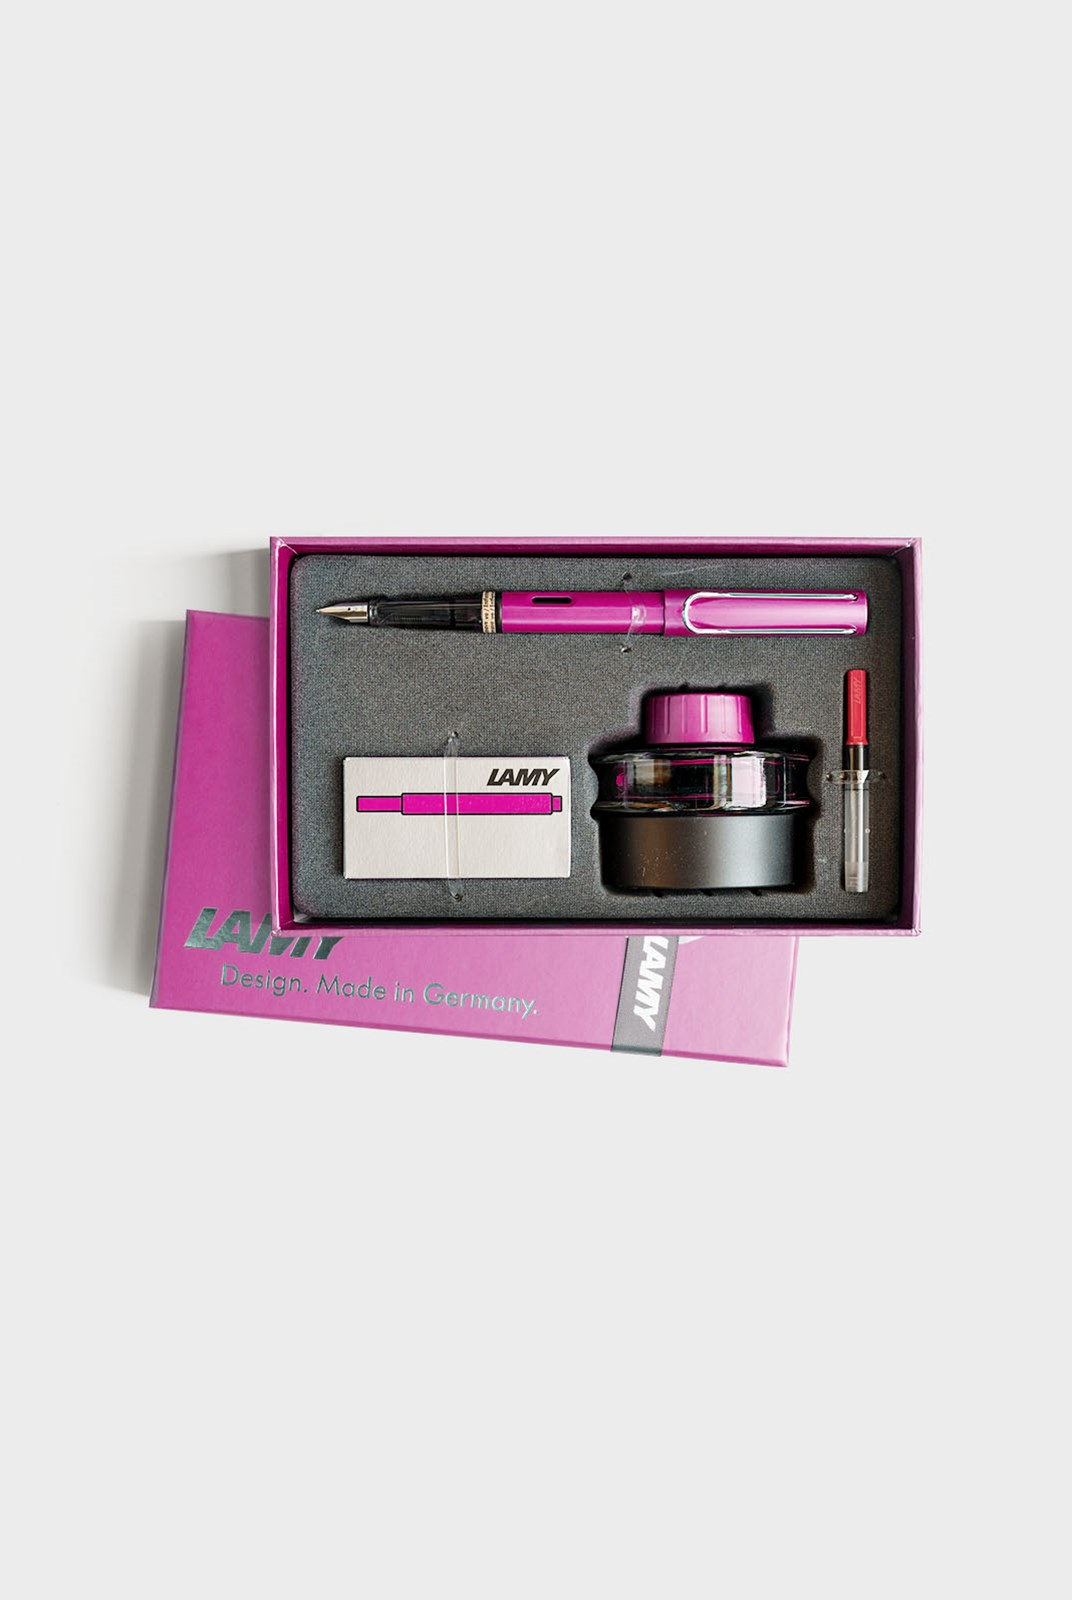 LAMY - AL-STAR - Vibrant Pink Fountain Pen with Converter - Ink Cartridges and 50ml Ink Bottle in Gift Box